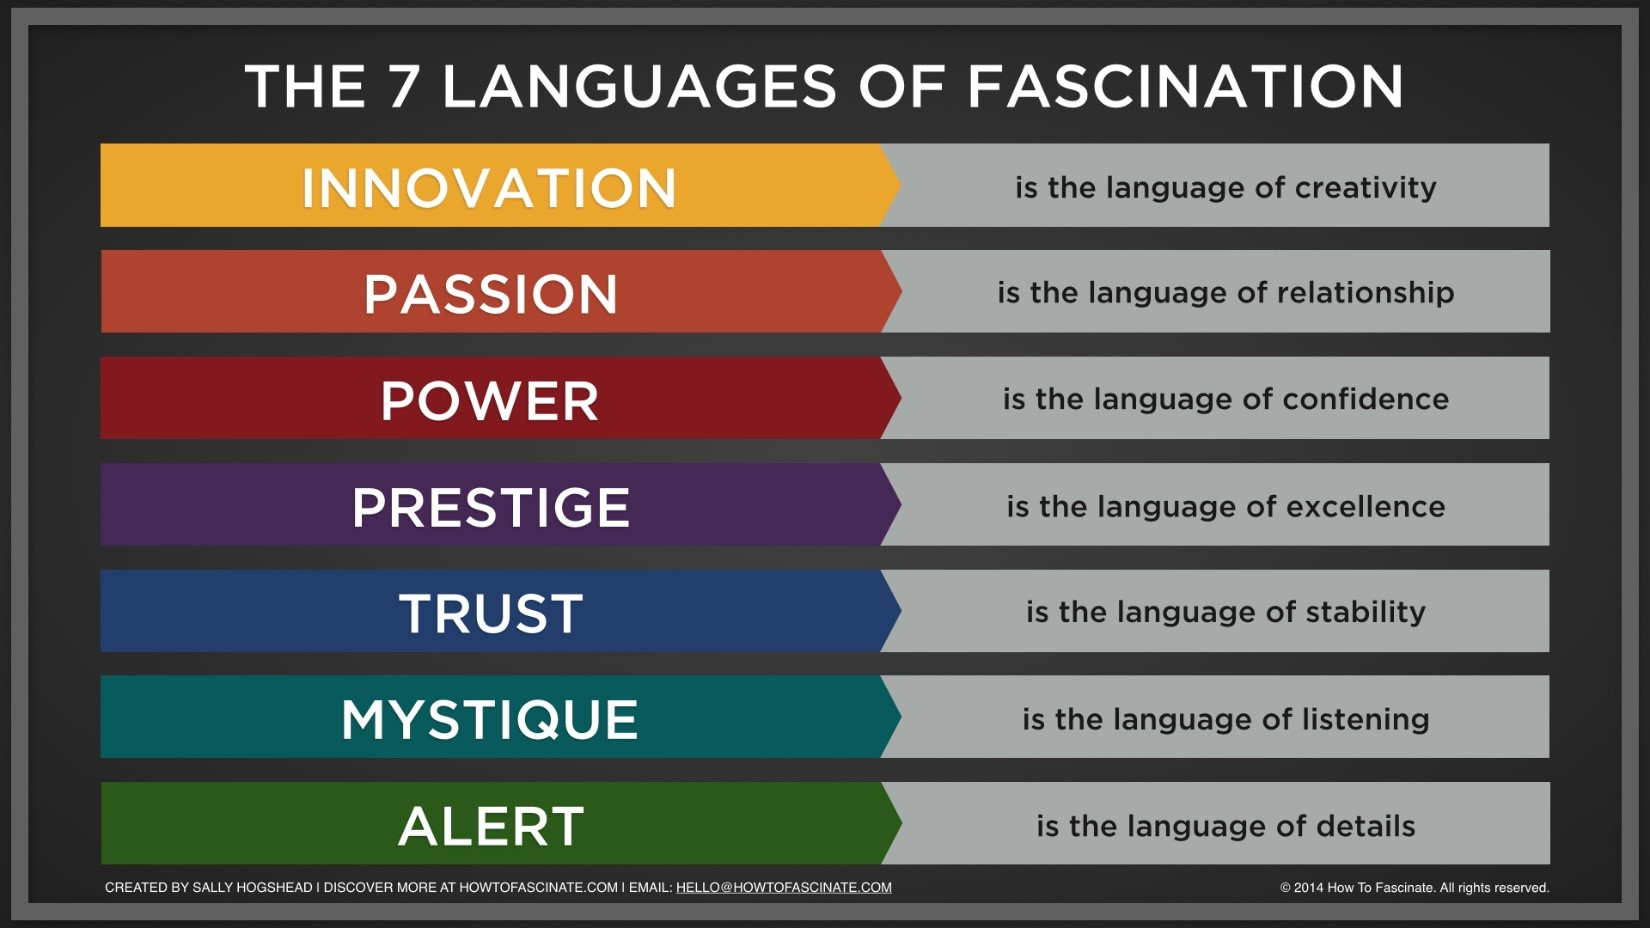 7 languages of fascination